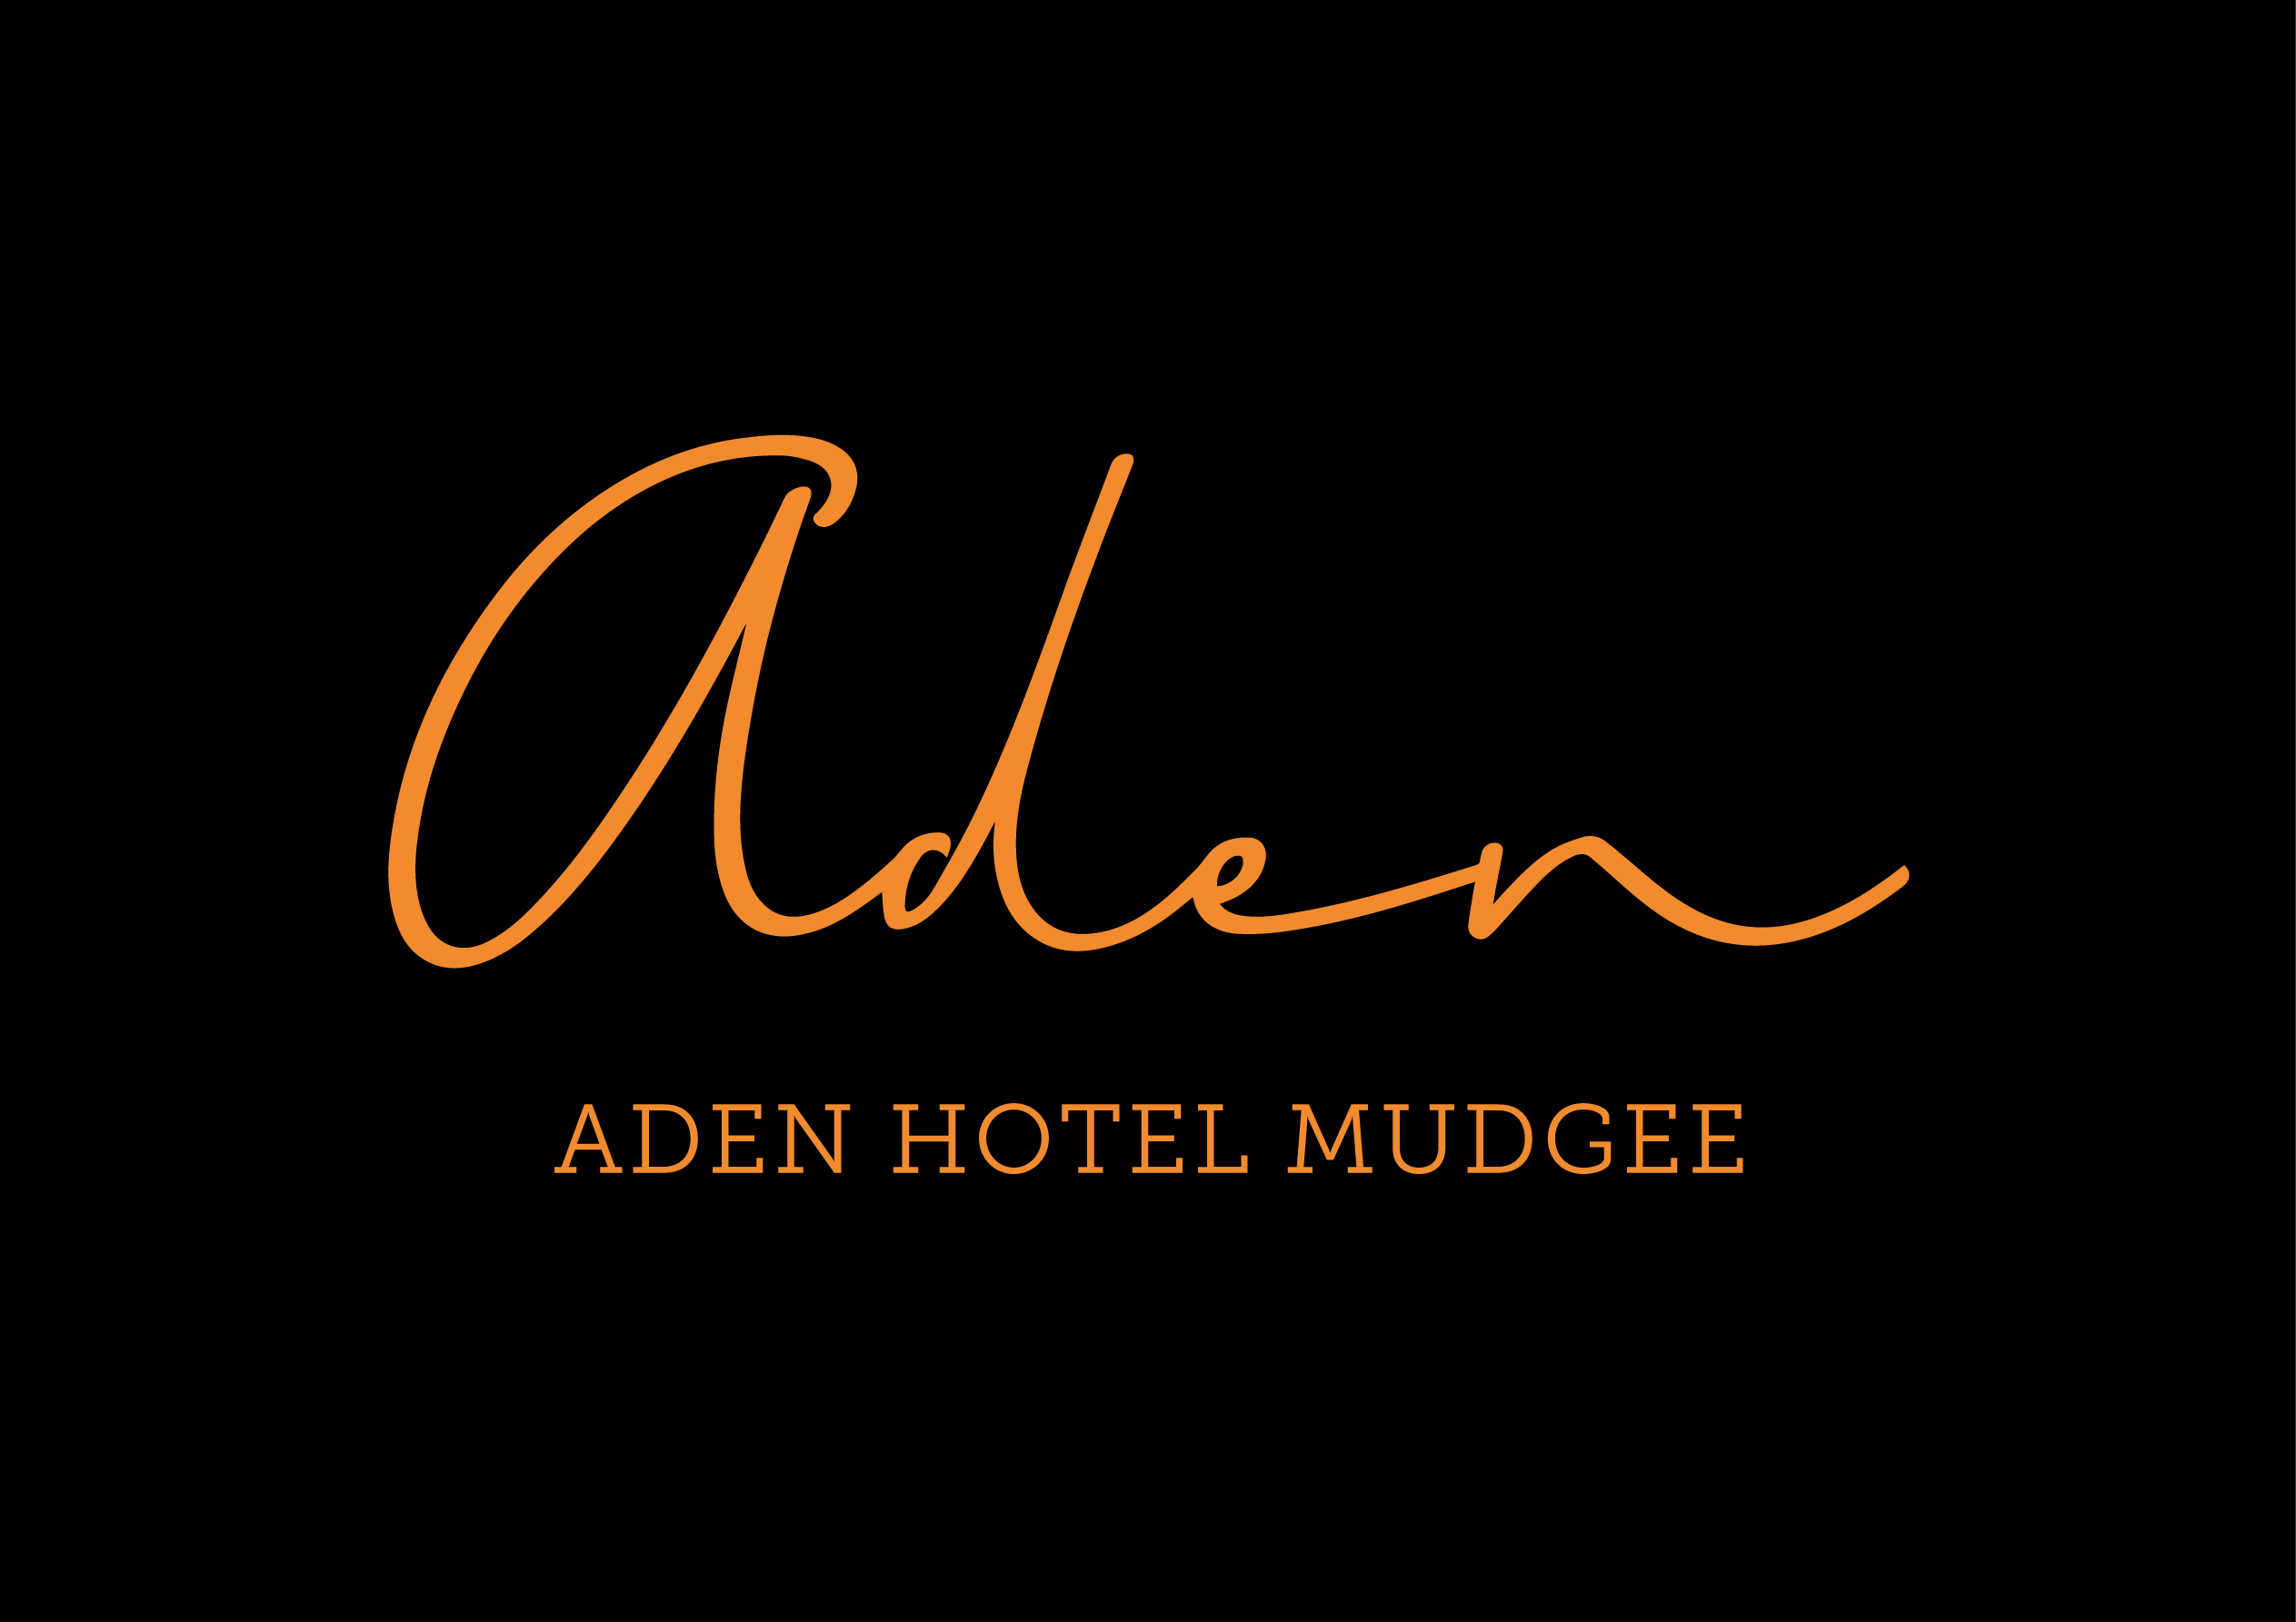 Comfort Inn Aden Hotel Mudgee - Mount Gambier Accommodation